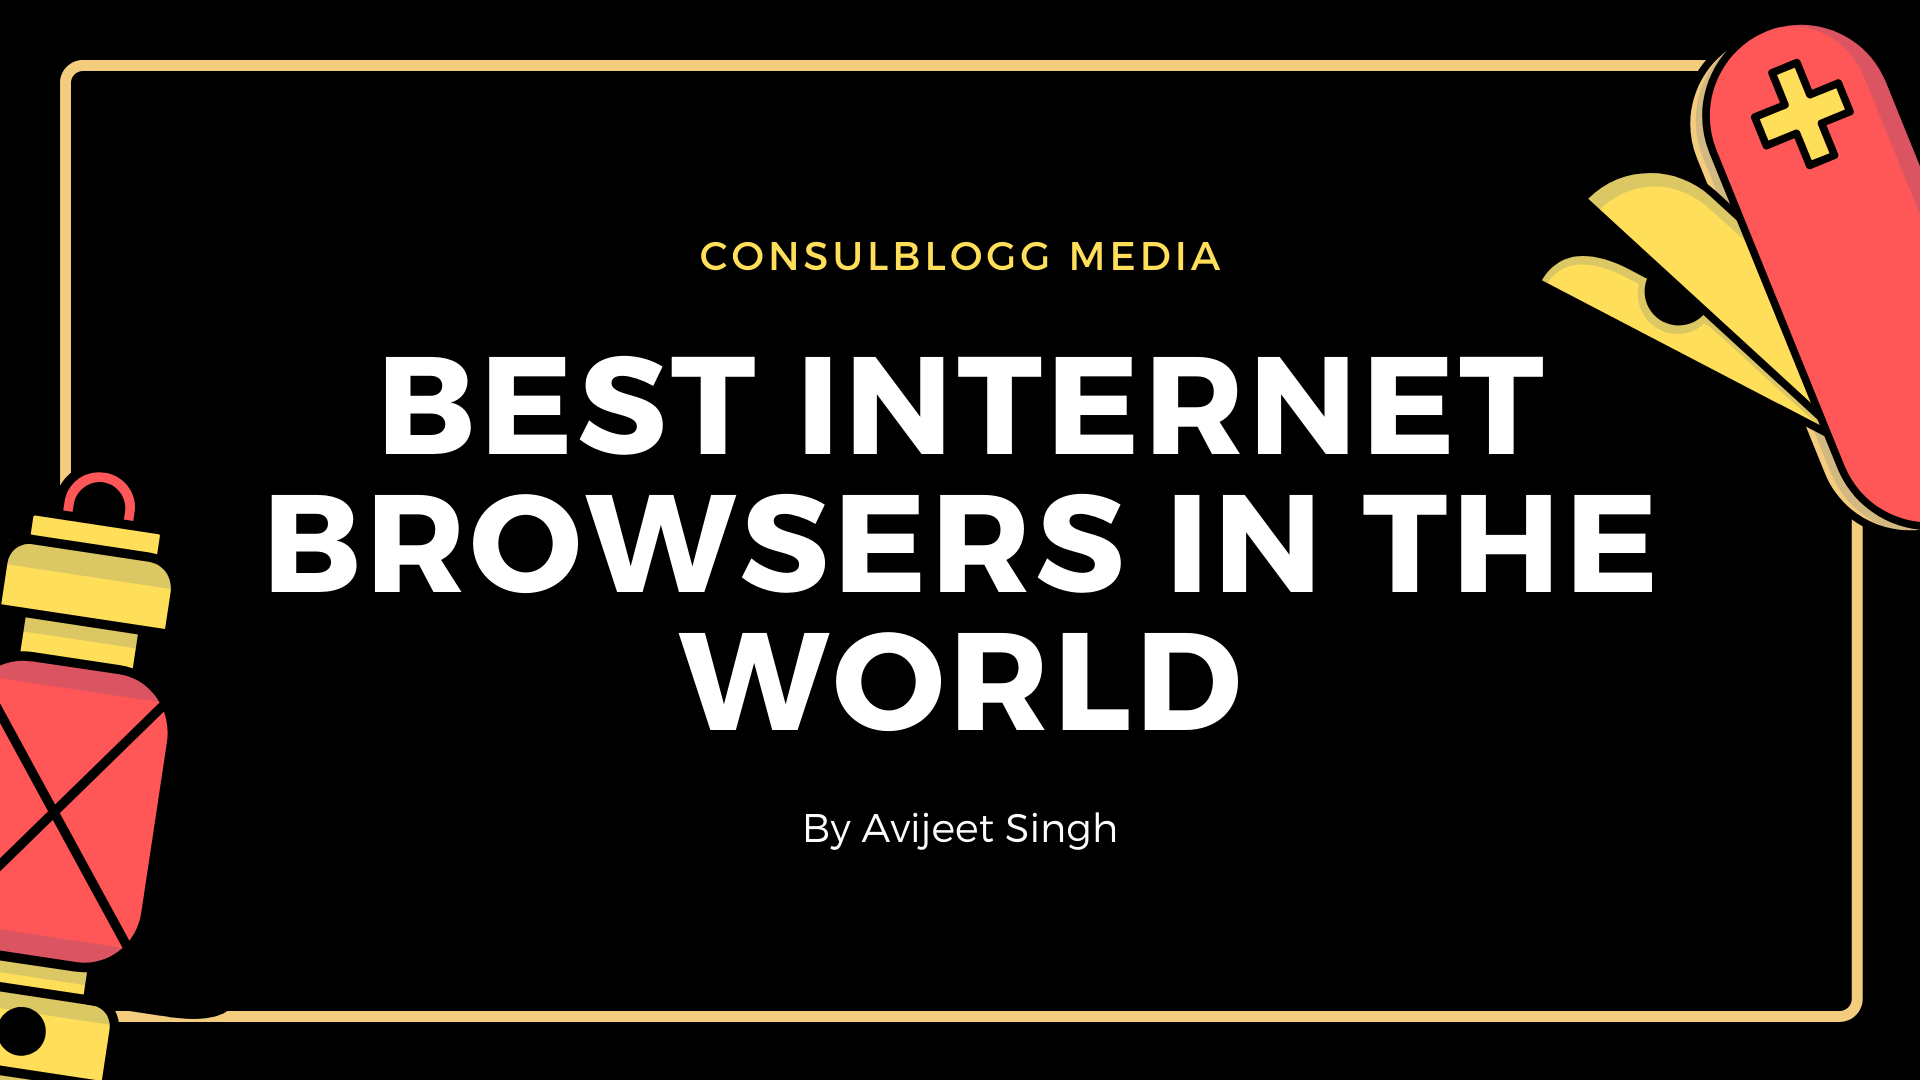 Best internet browsers in the world